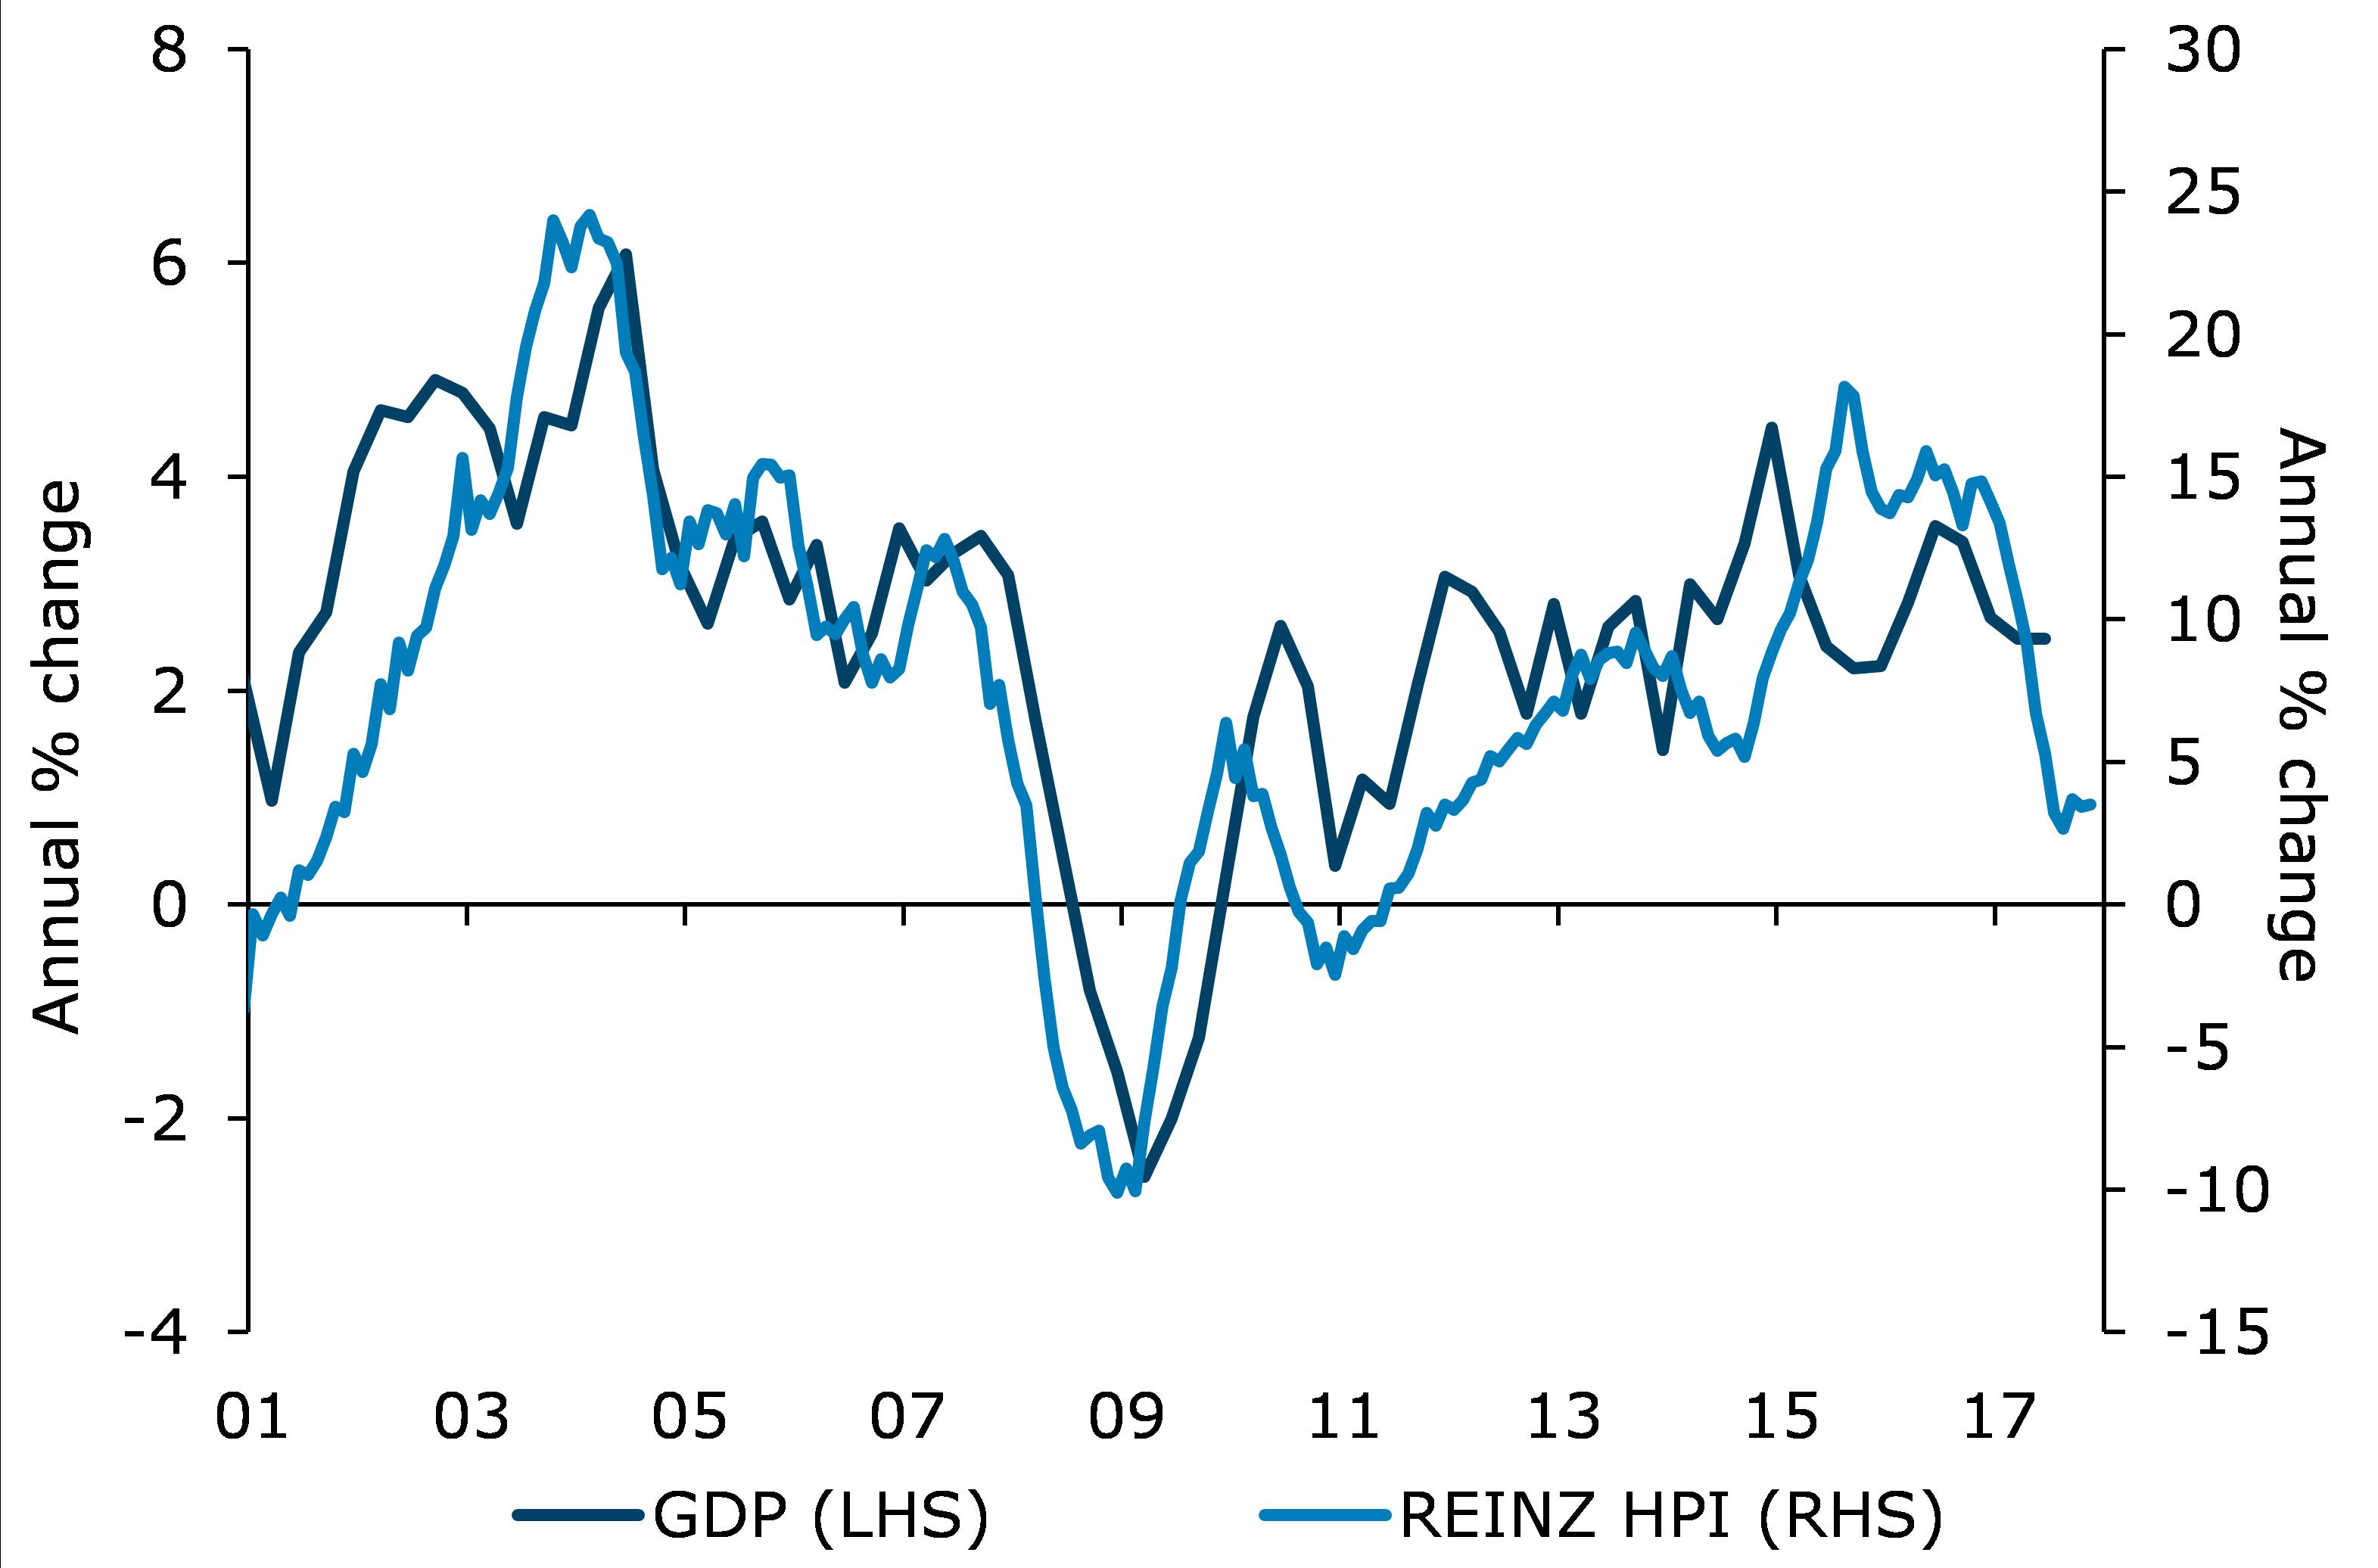 Real GDP growth and house price inflation